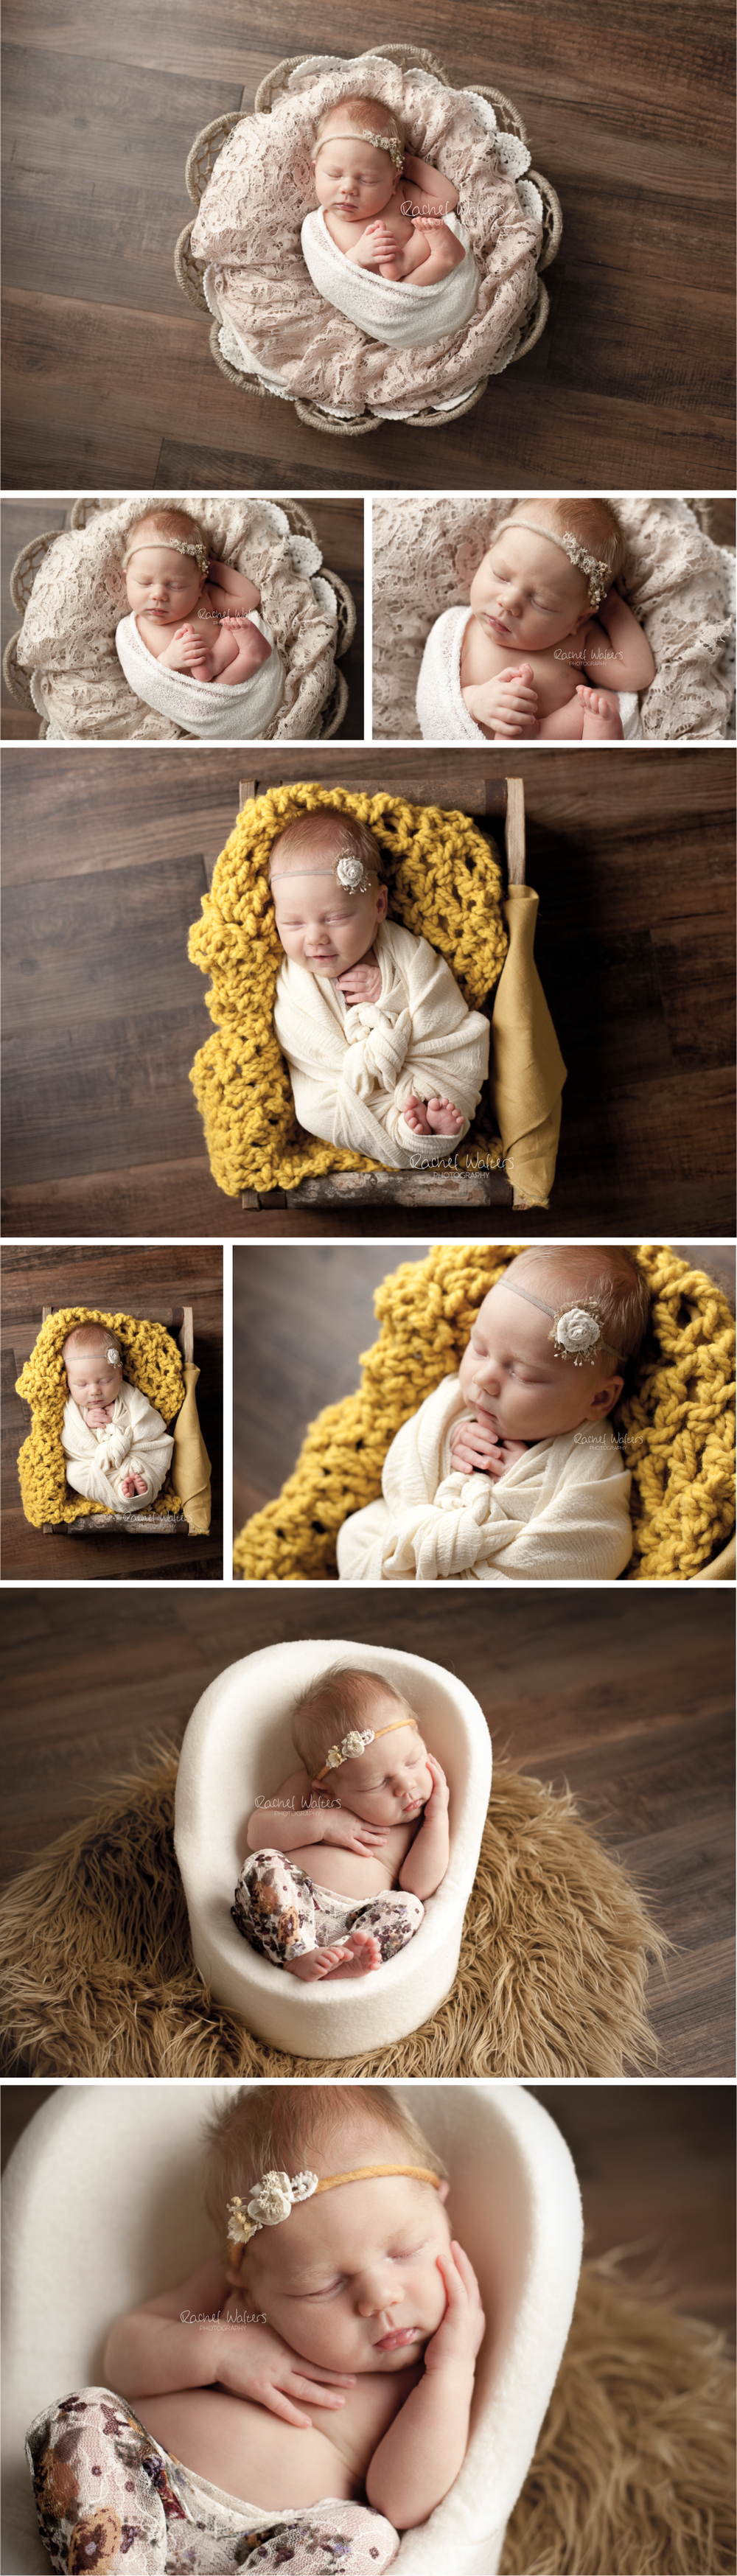 Chesterfield Michigan Newborn Photographer